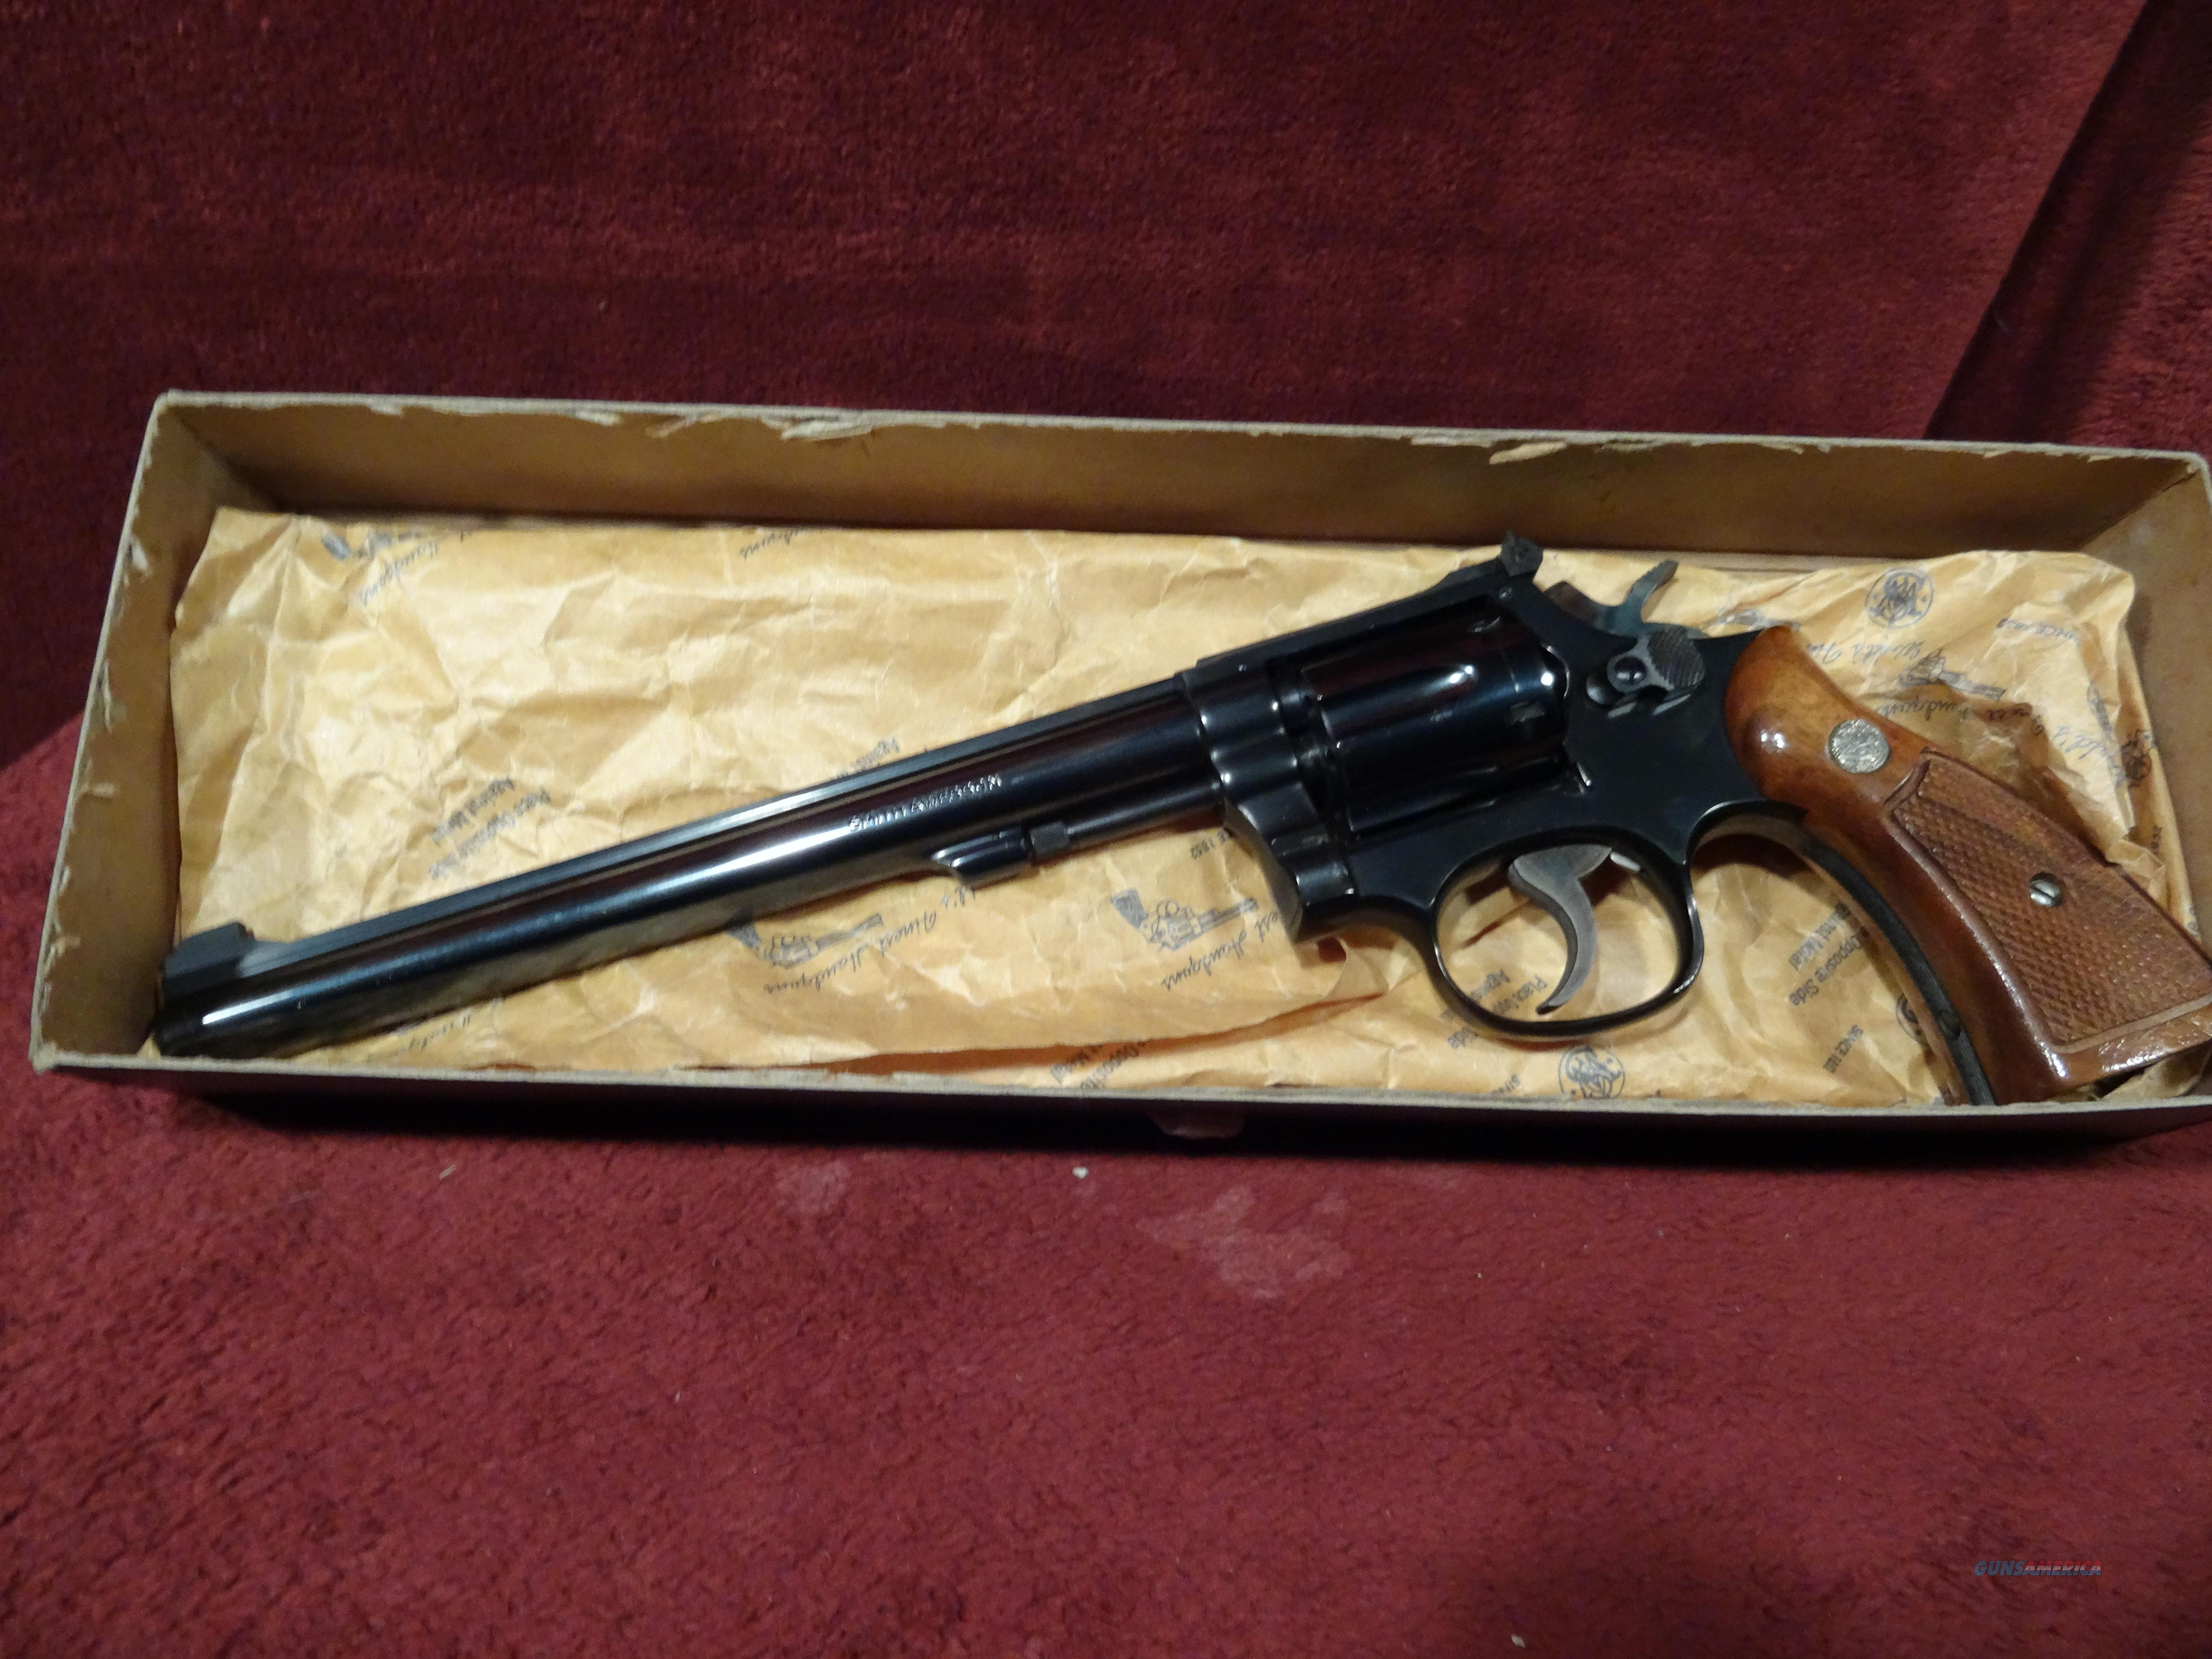 SMITH & WESSON MODEL 48-2 22 WIN MAG  Guns > Pistols > Smith & Wesson Revolvers > Full Frame Revolver